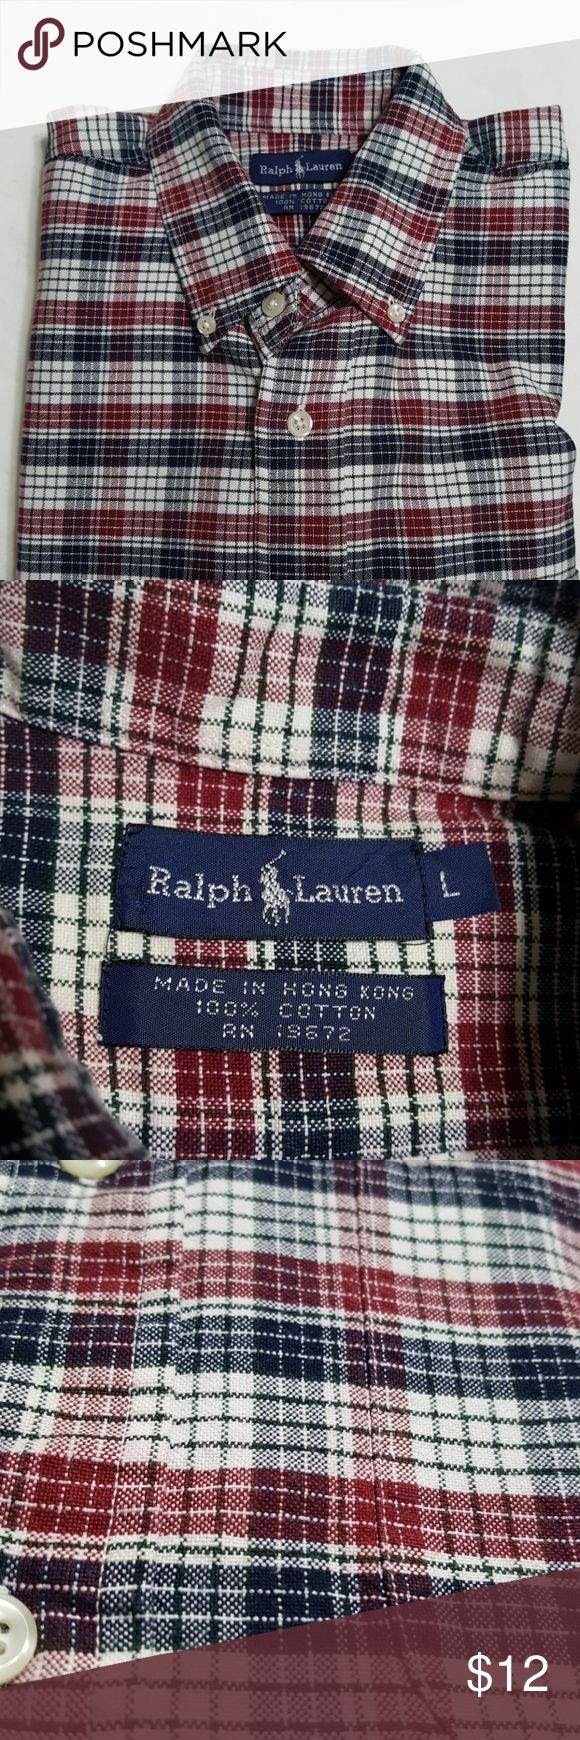 "Boys L/S button down shirt, sz L Navy, red and white plaid button down shirt with front pocket. Size large.  Measurements are approximate:  Shoulder to shoulder: 18.25"" Armpit to armpit: 21.75"" Shoulder to hem: 27"" Shoulder to cuff: 20 5/8"" Ralph Lauren Shirts & Tops Button Down Shirts"